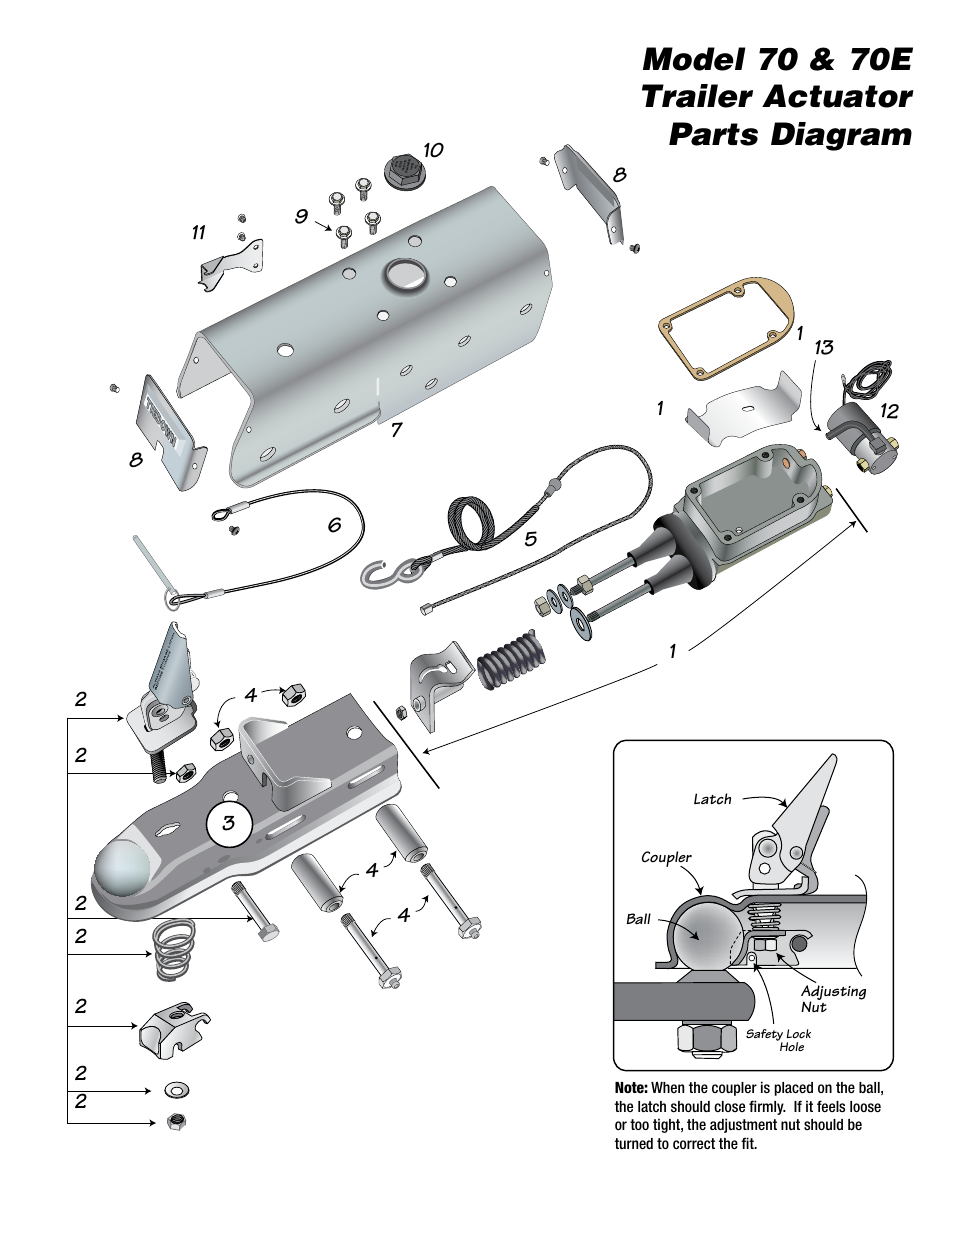 disc brake assembly diagram model 70 amp 70e trailer actuator parts diagram tie down disc brake parts diagram